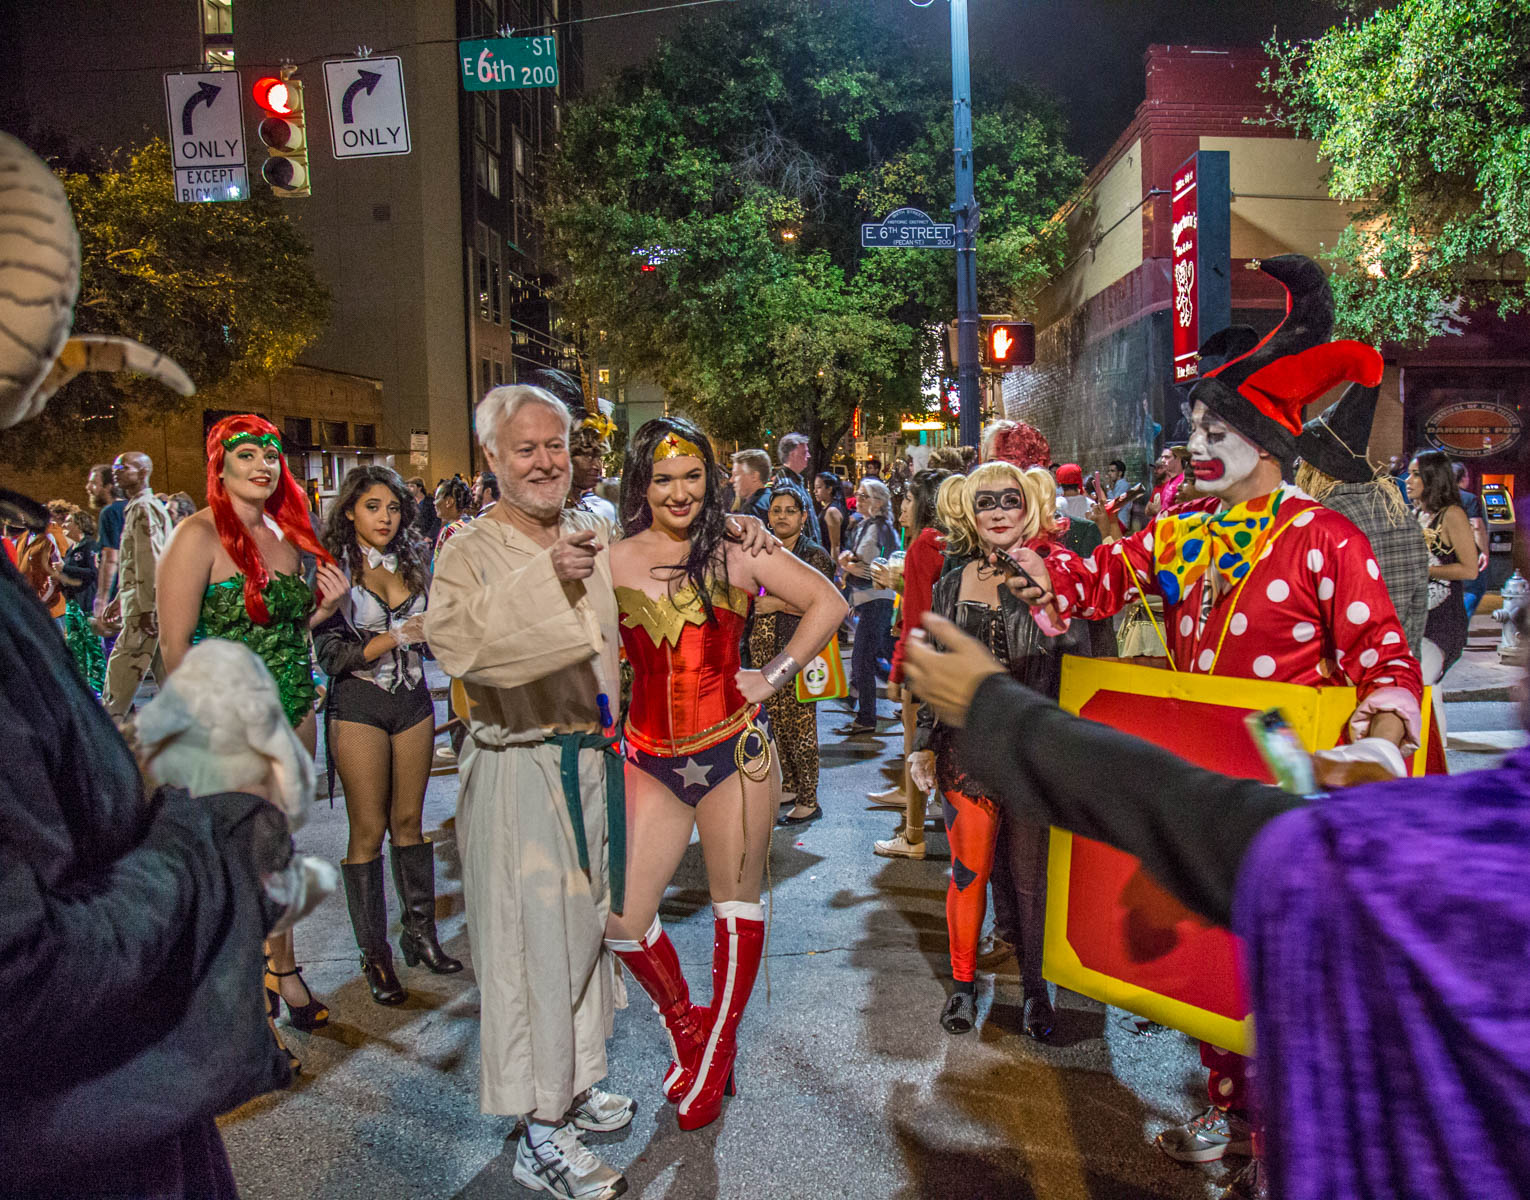 It's a packed house on East 6th for Halloween celebrations every October.